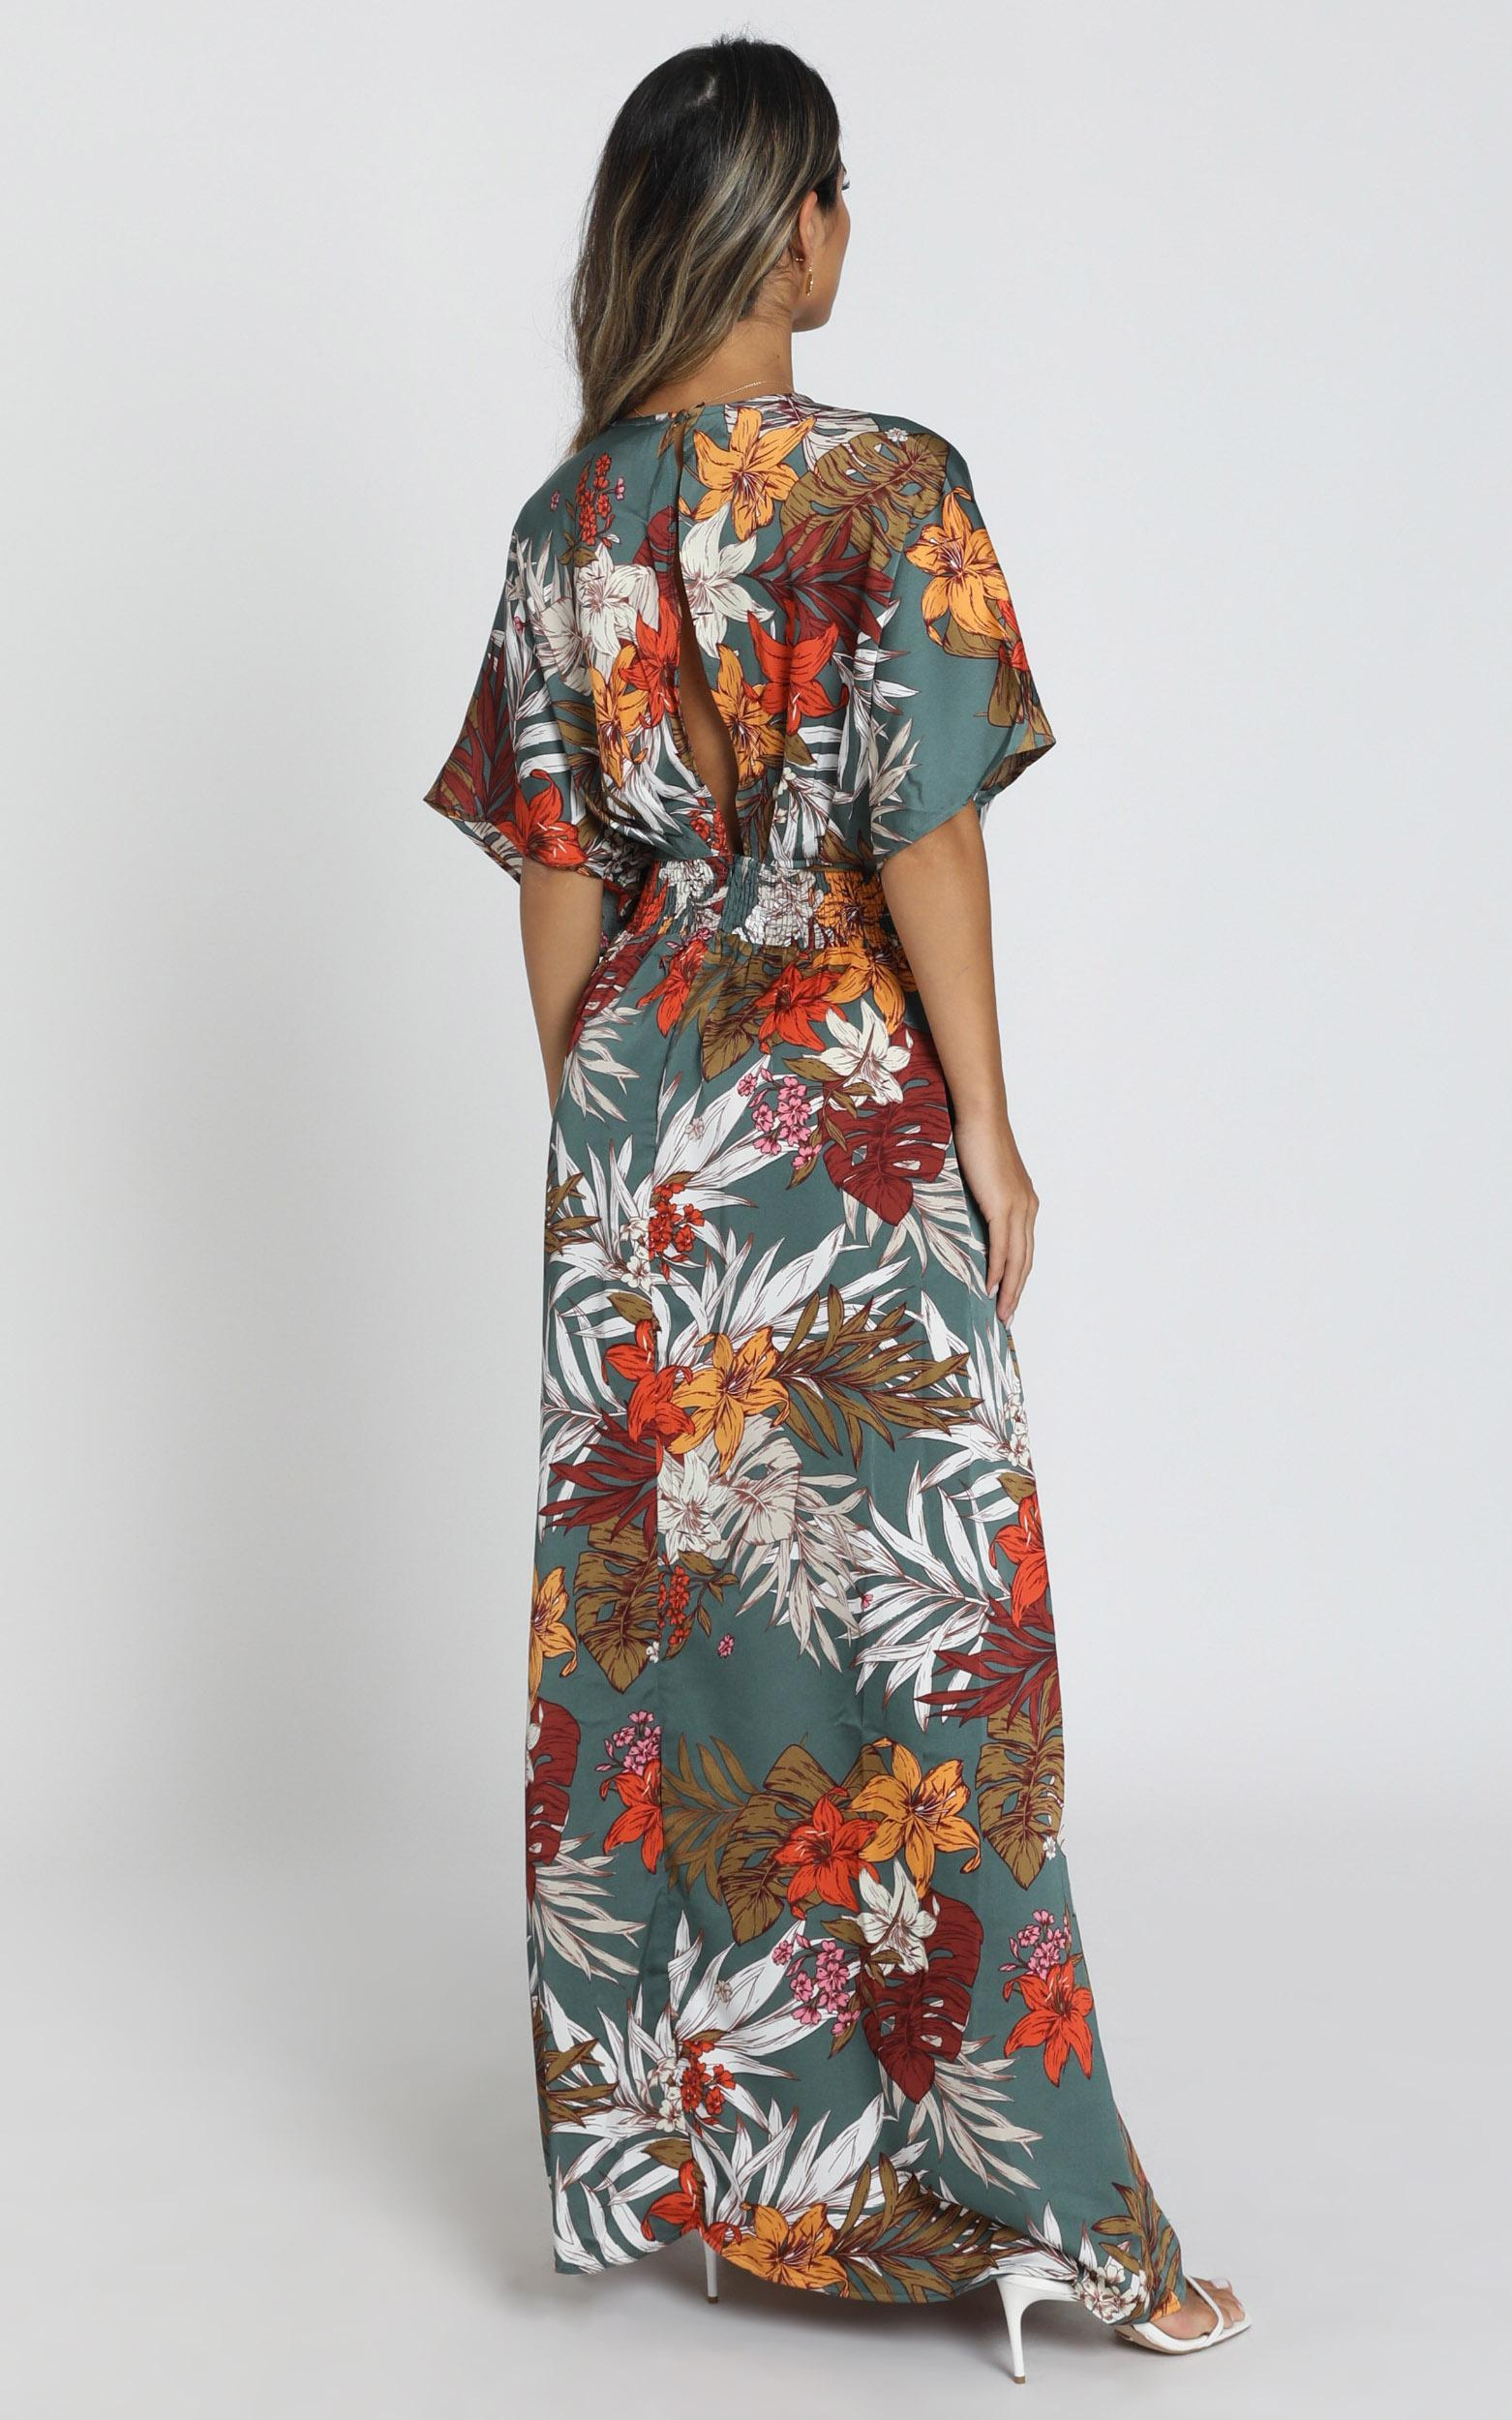 Vacay Ready Maxi Dress in teal floral satin - 20 (XXXXL), Blue, hi-res image number null